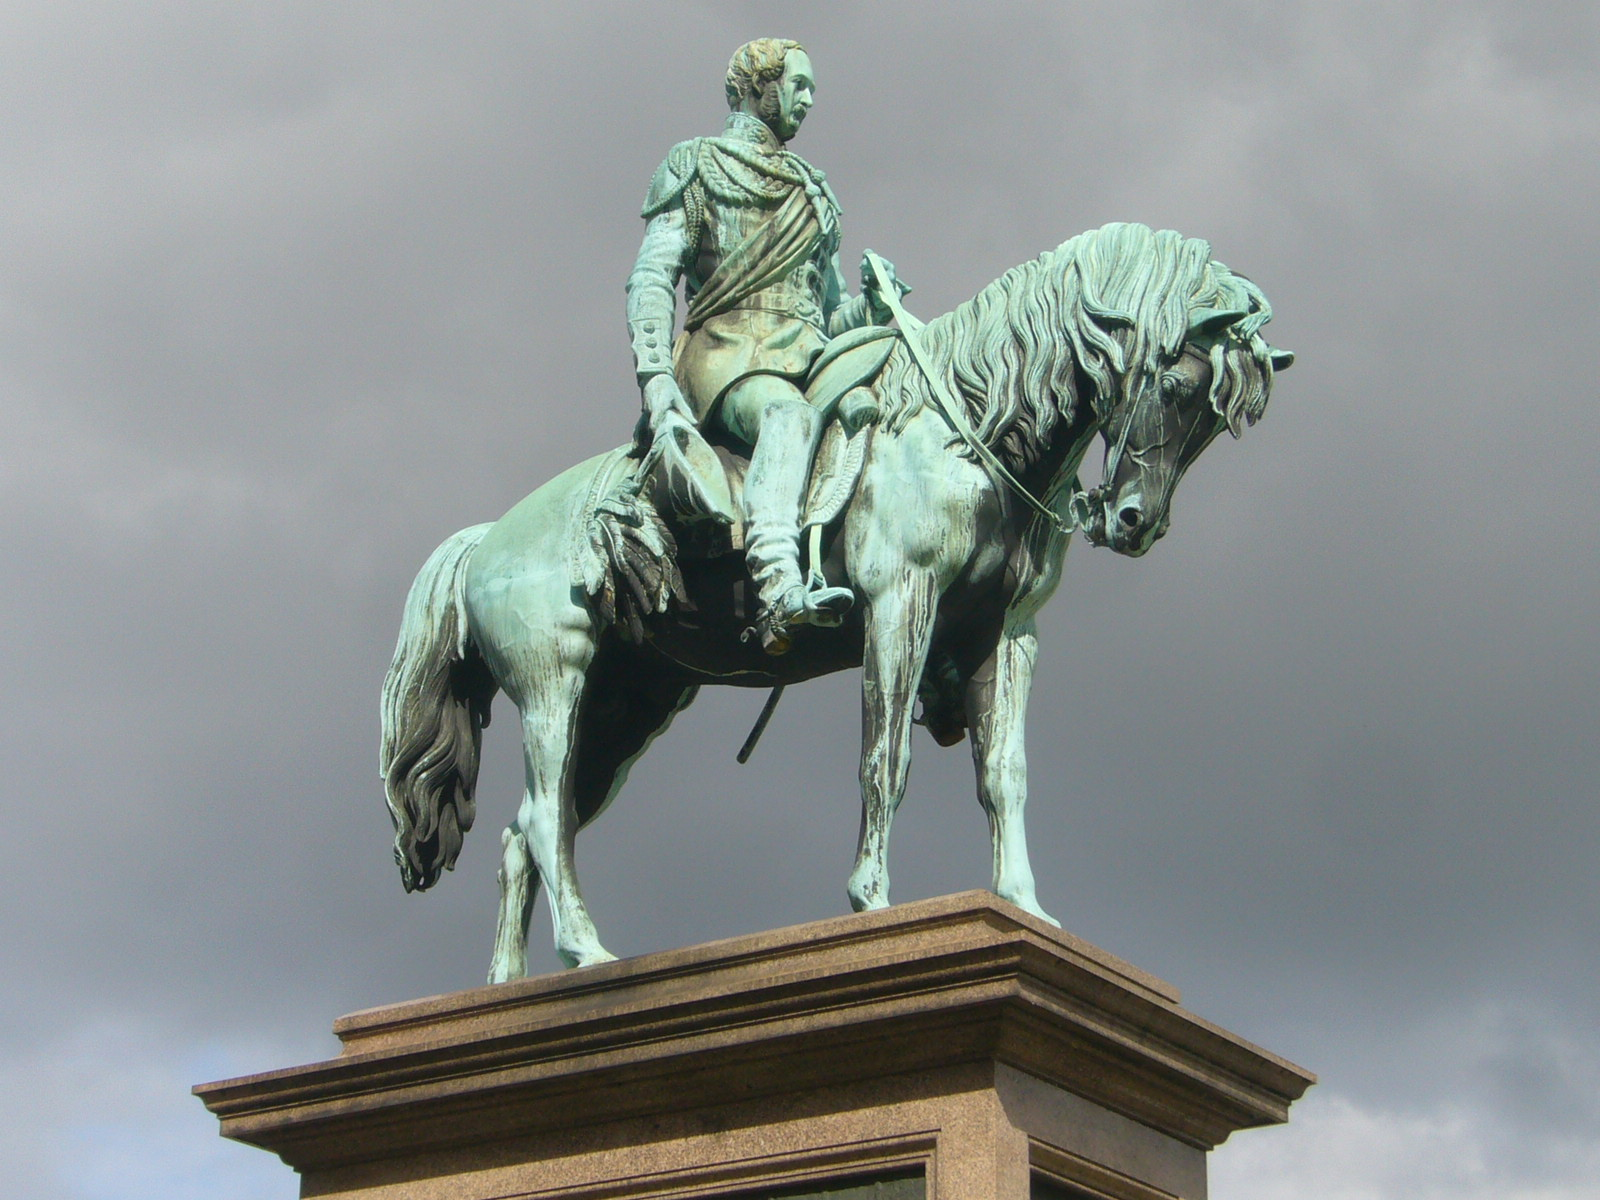 FilePrince Albert Memorial Statue EdinburghJPG